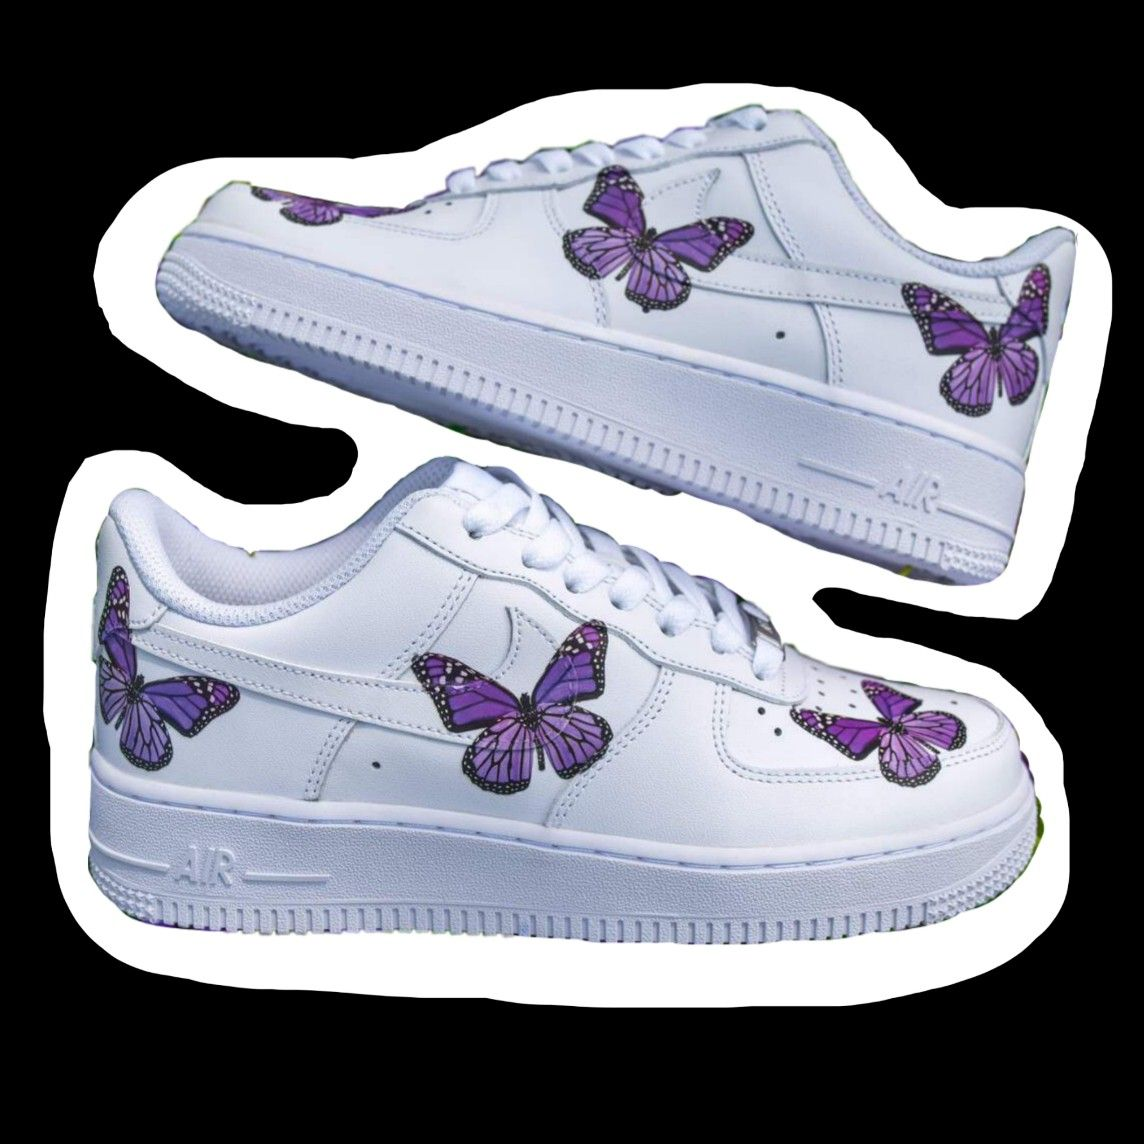 'Air Force with purple butterflies' Sticker by m1chelle